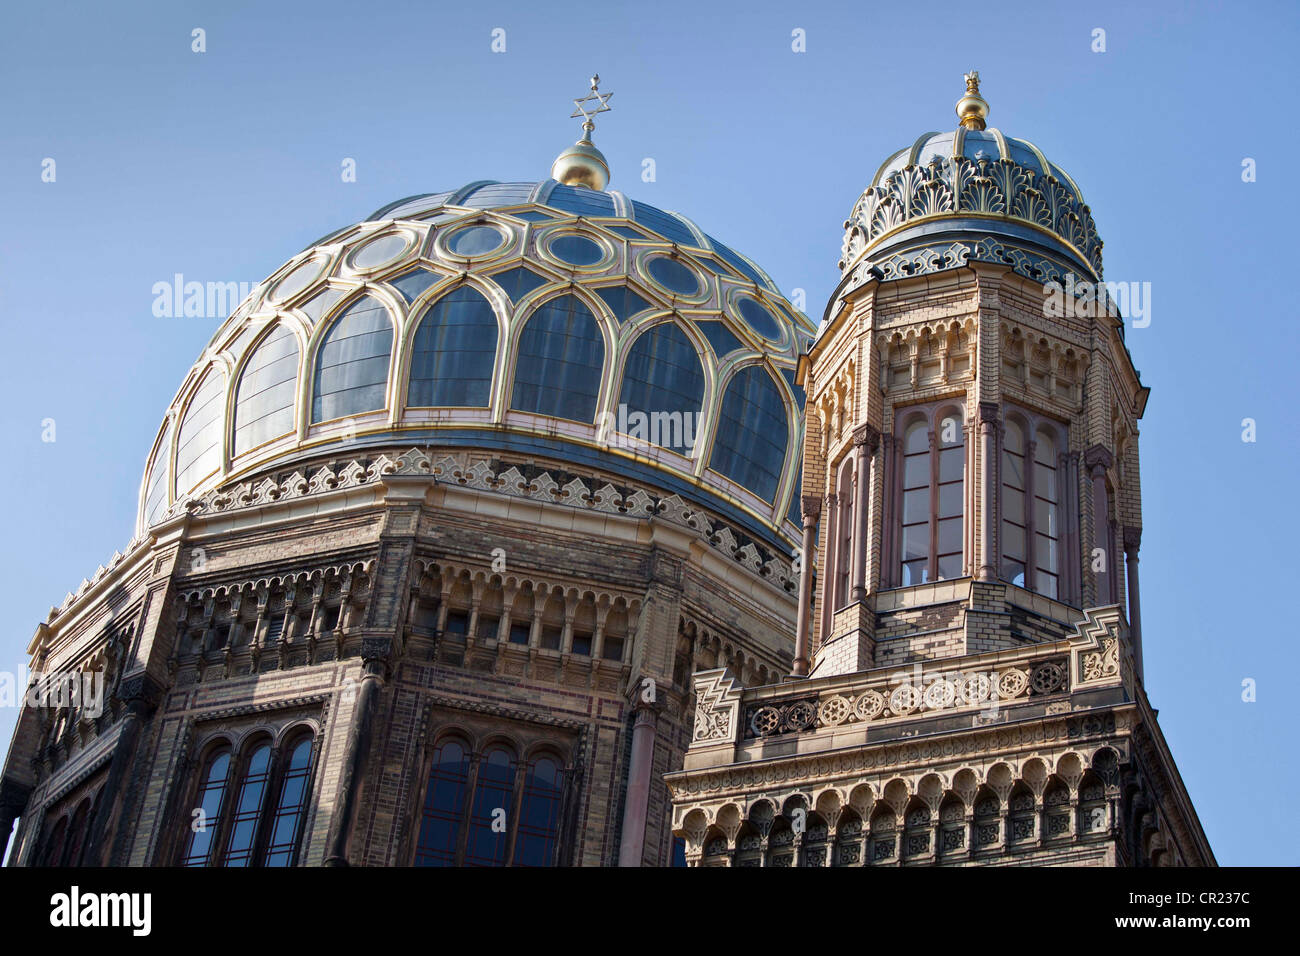 Ornate domed cathedral - Stock Image